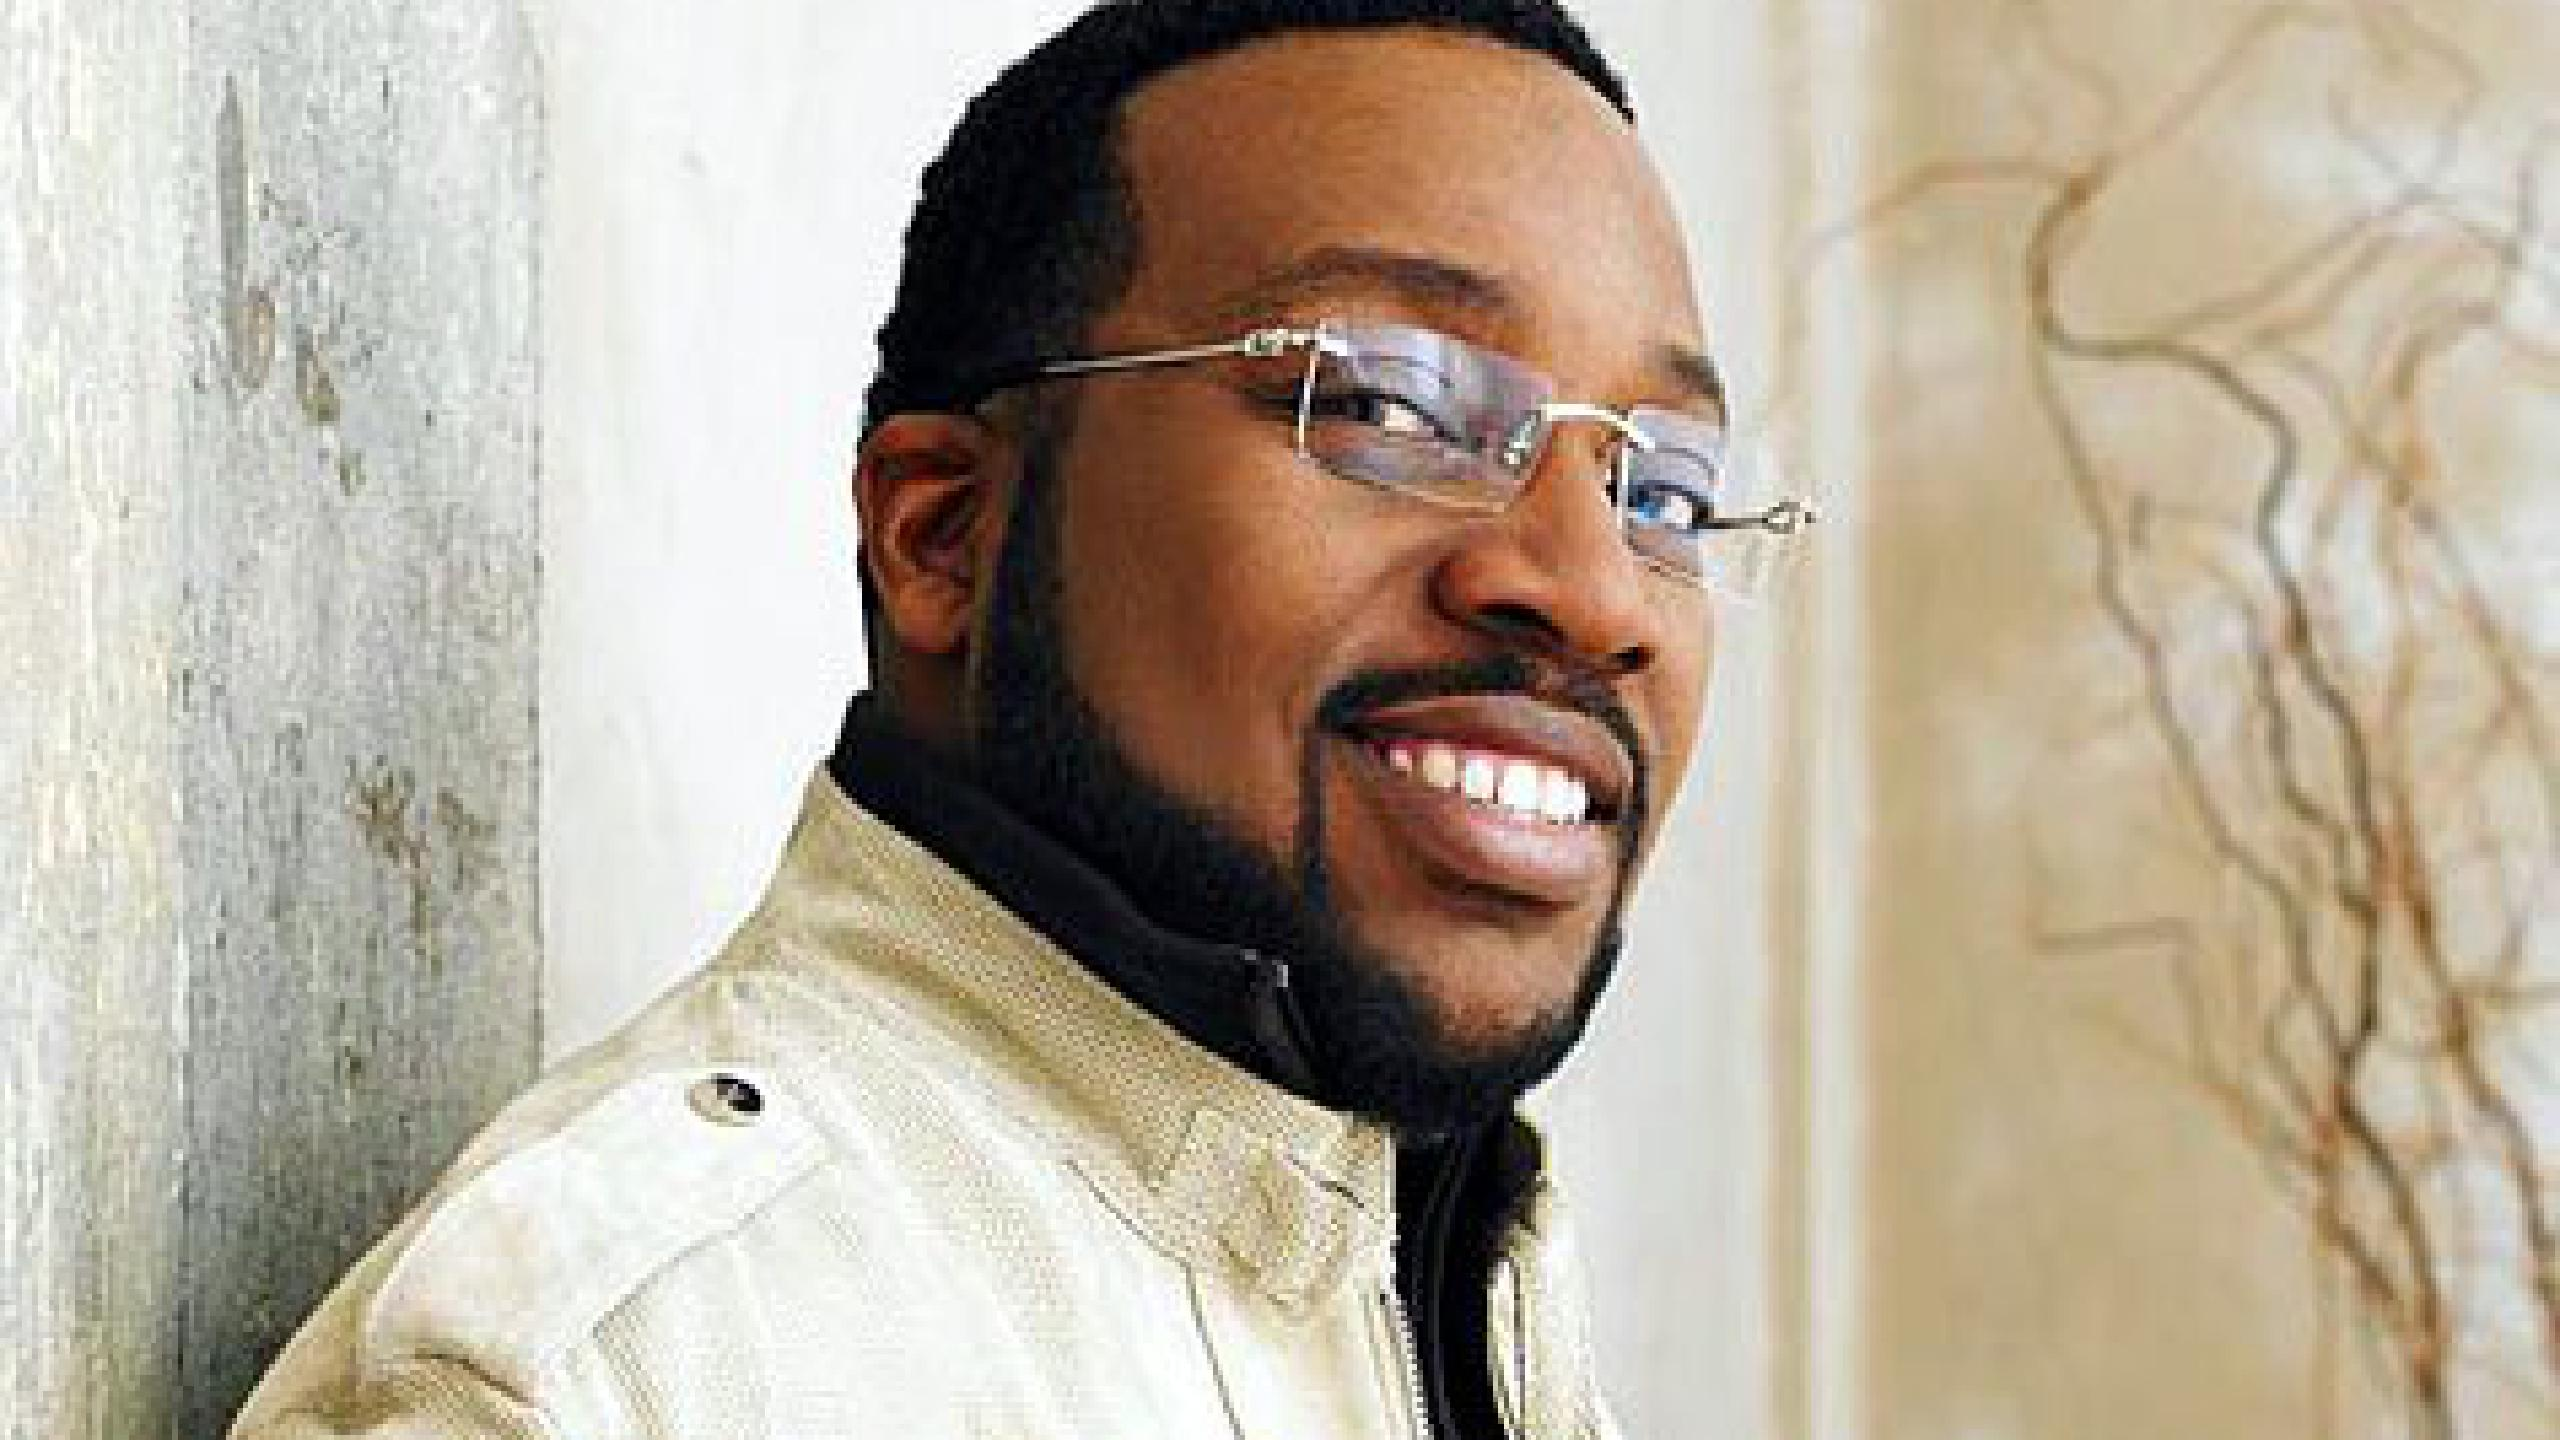 Photos of marvin sapp Building a Better Shopping Experience - The Future of